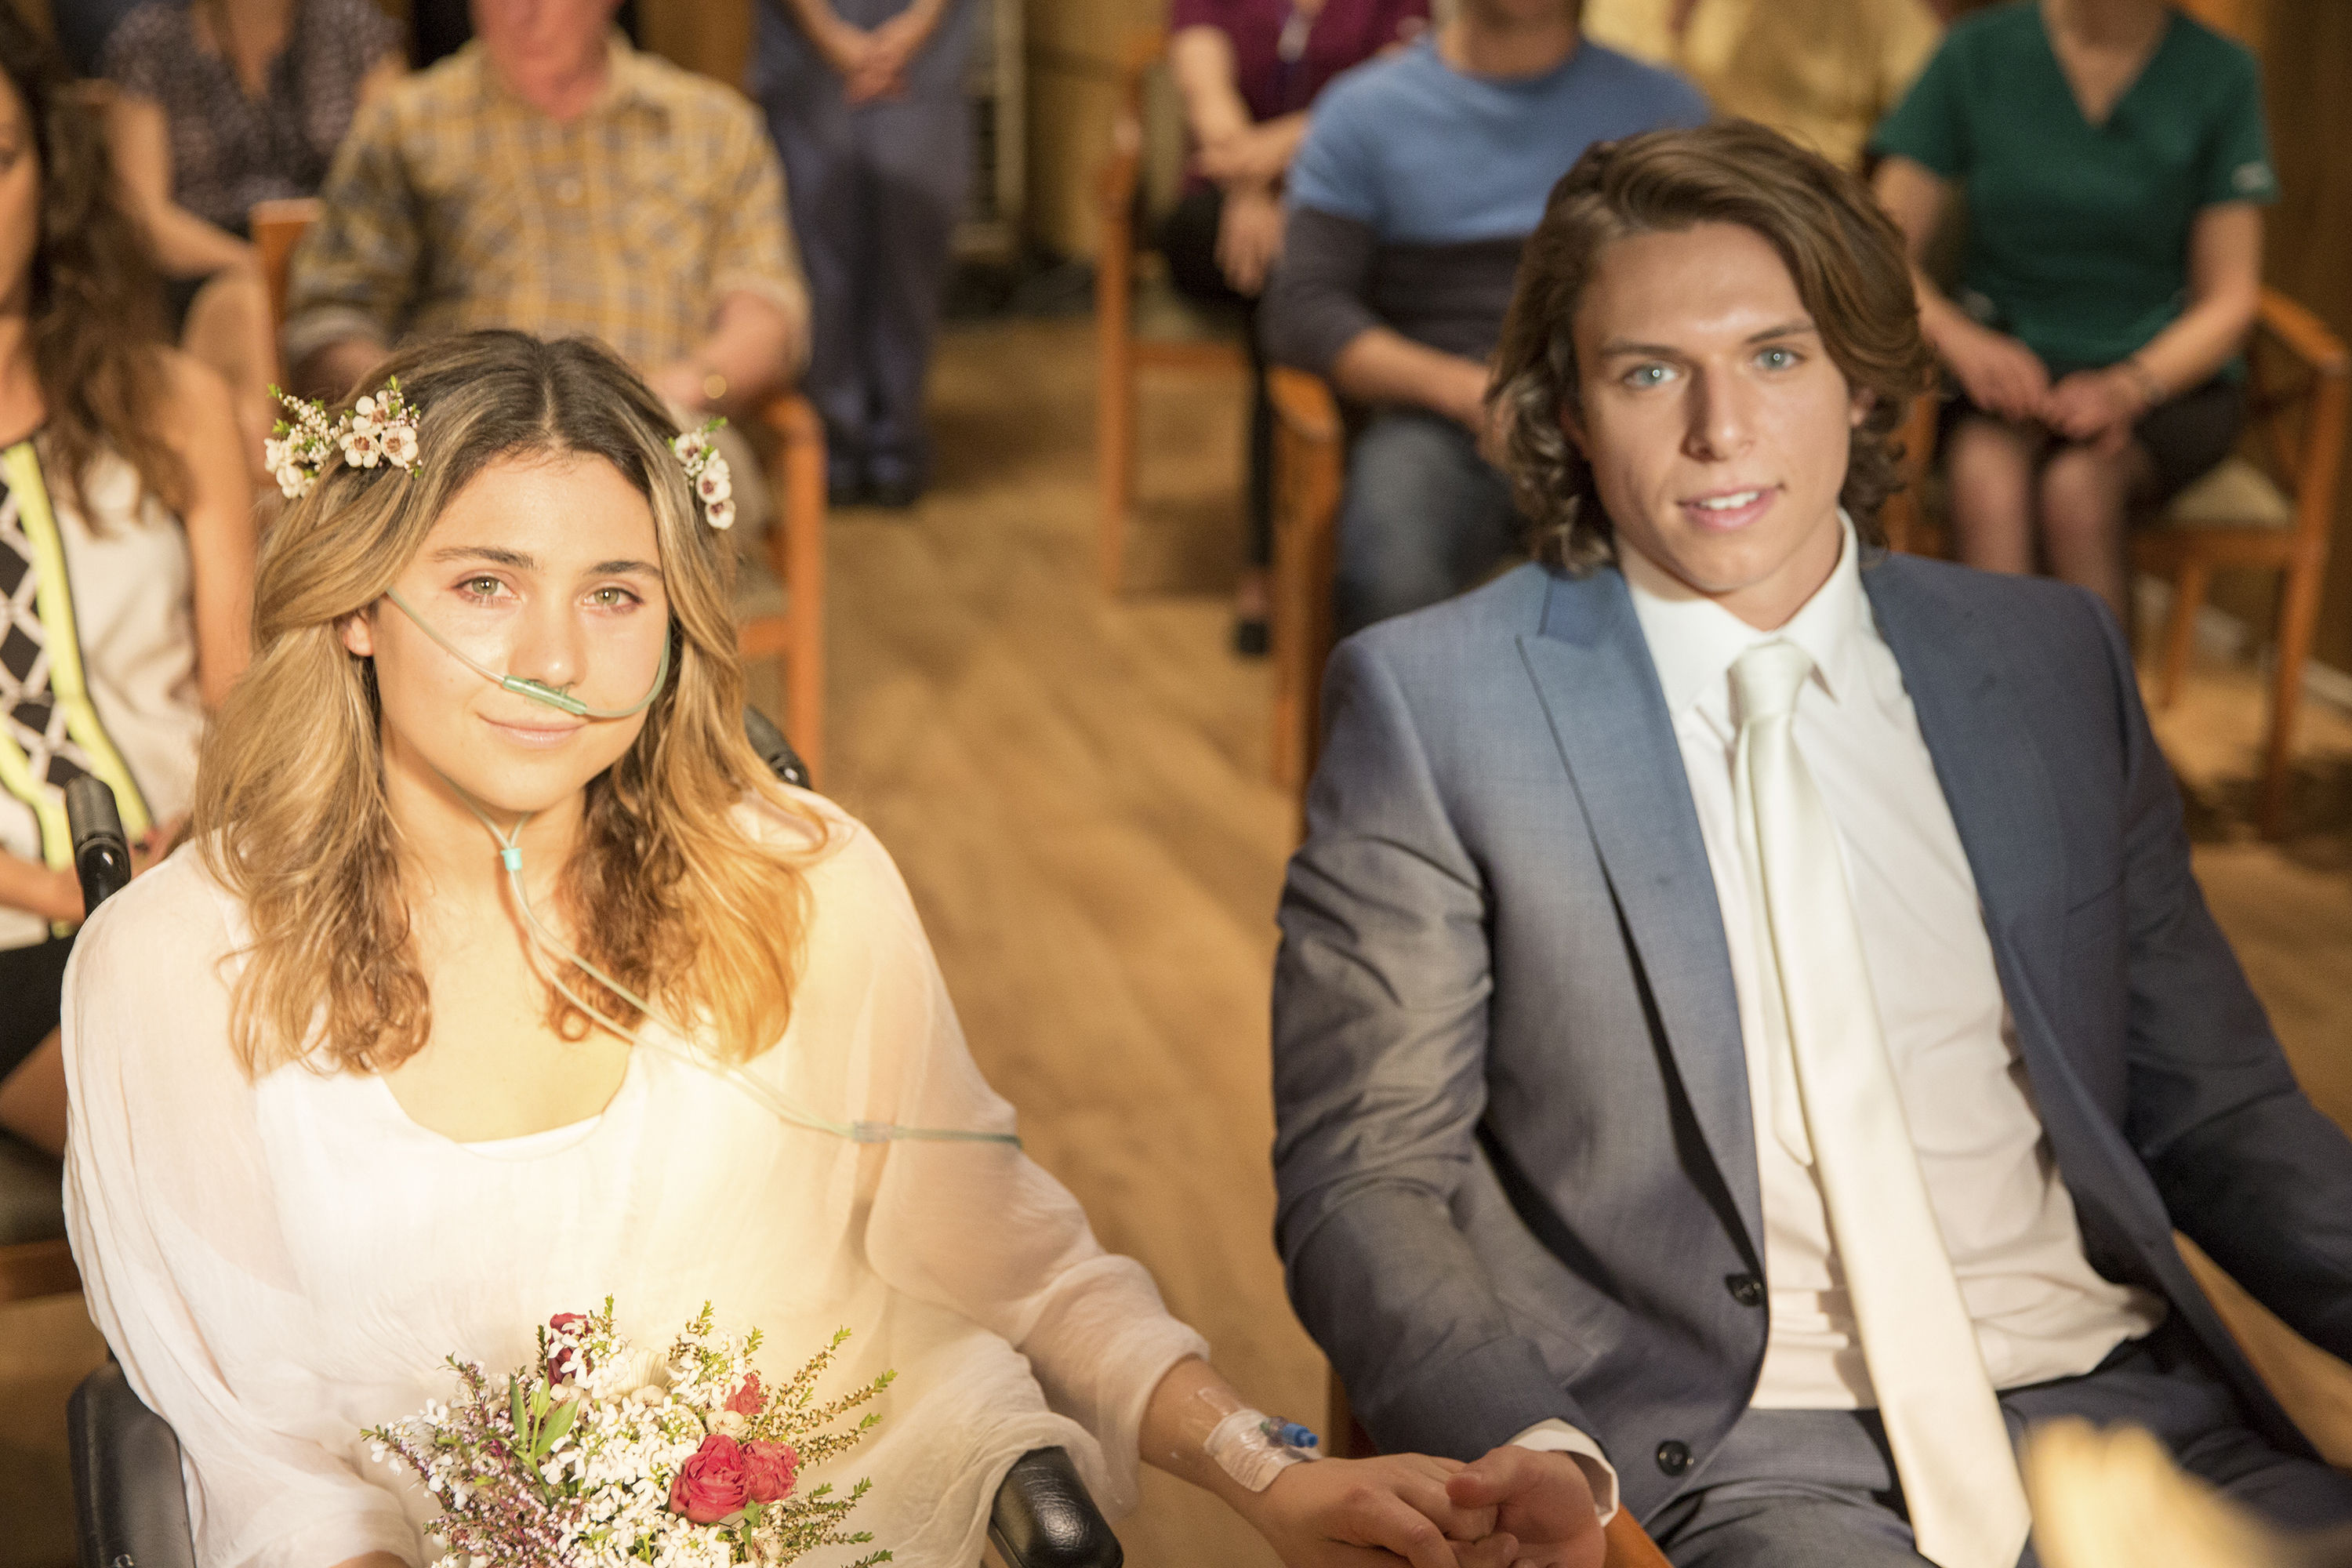 Home and Away spoilers: Details of Billie's tragic final scenes revealed